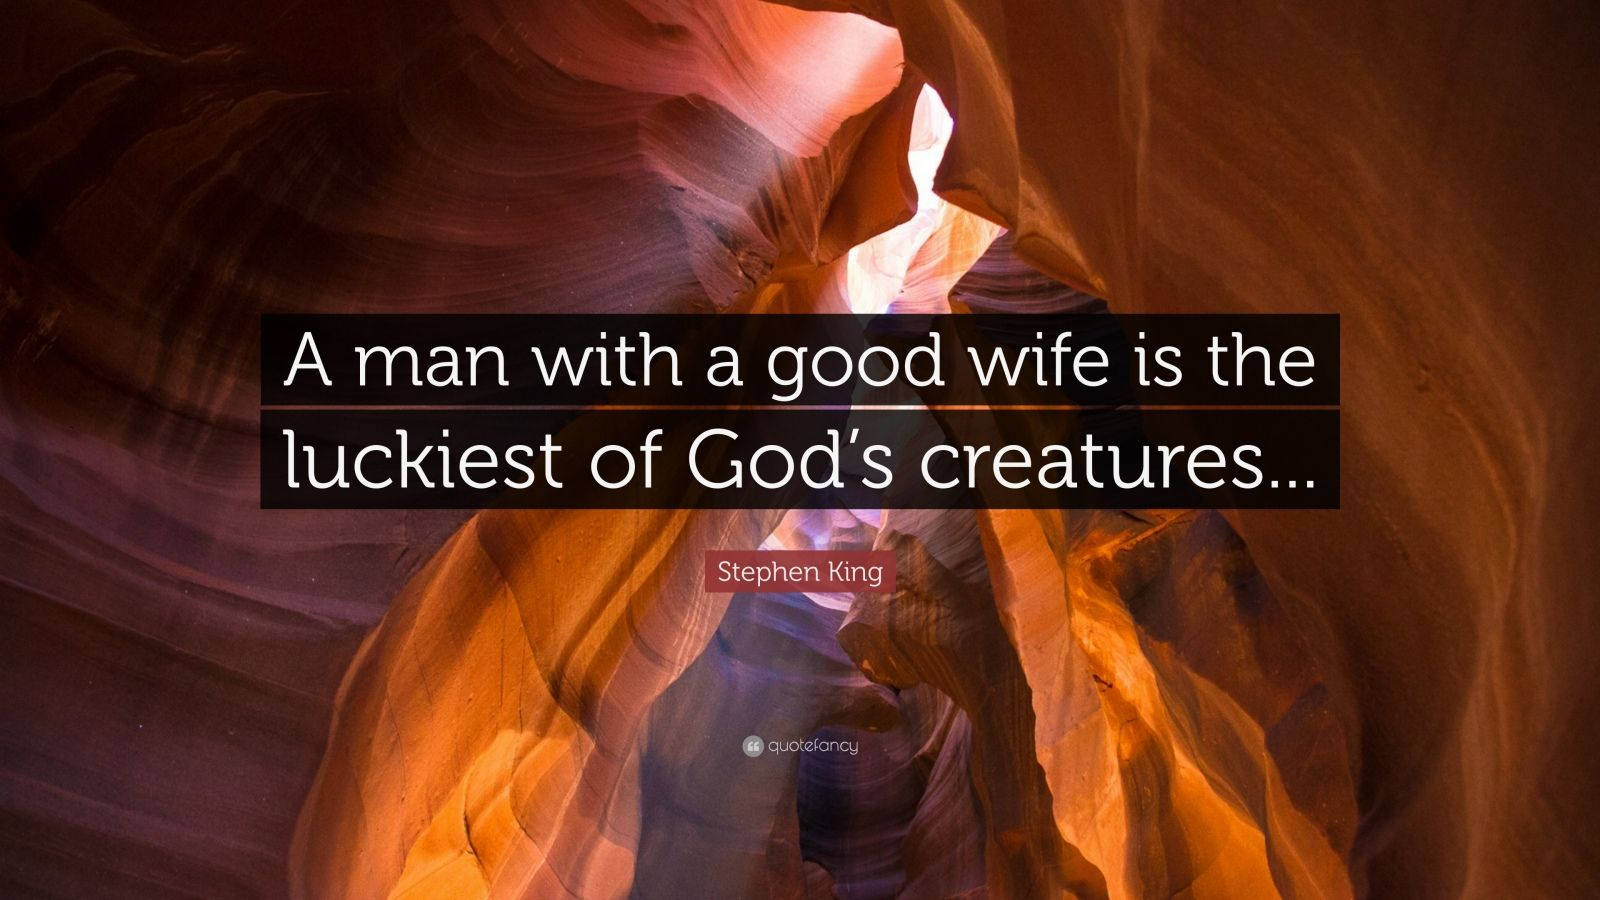 """Stephen King Quote: """"A man with a good wife is the luckiest of God's creatures..."""""""